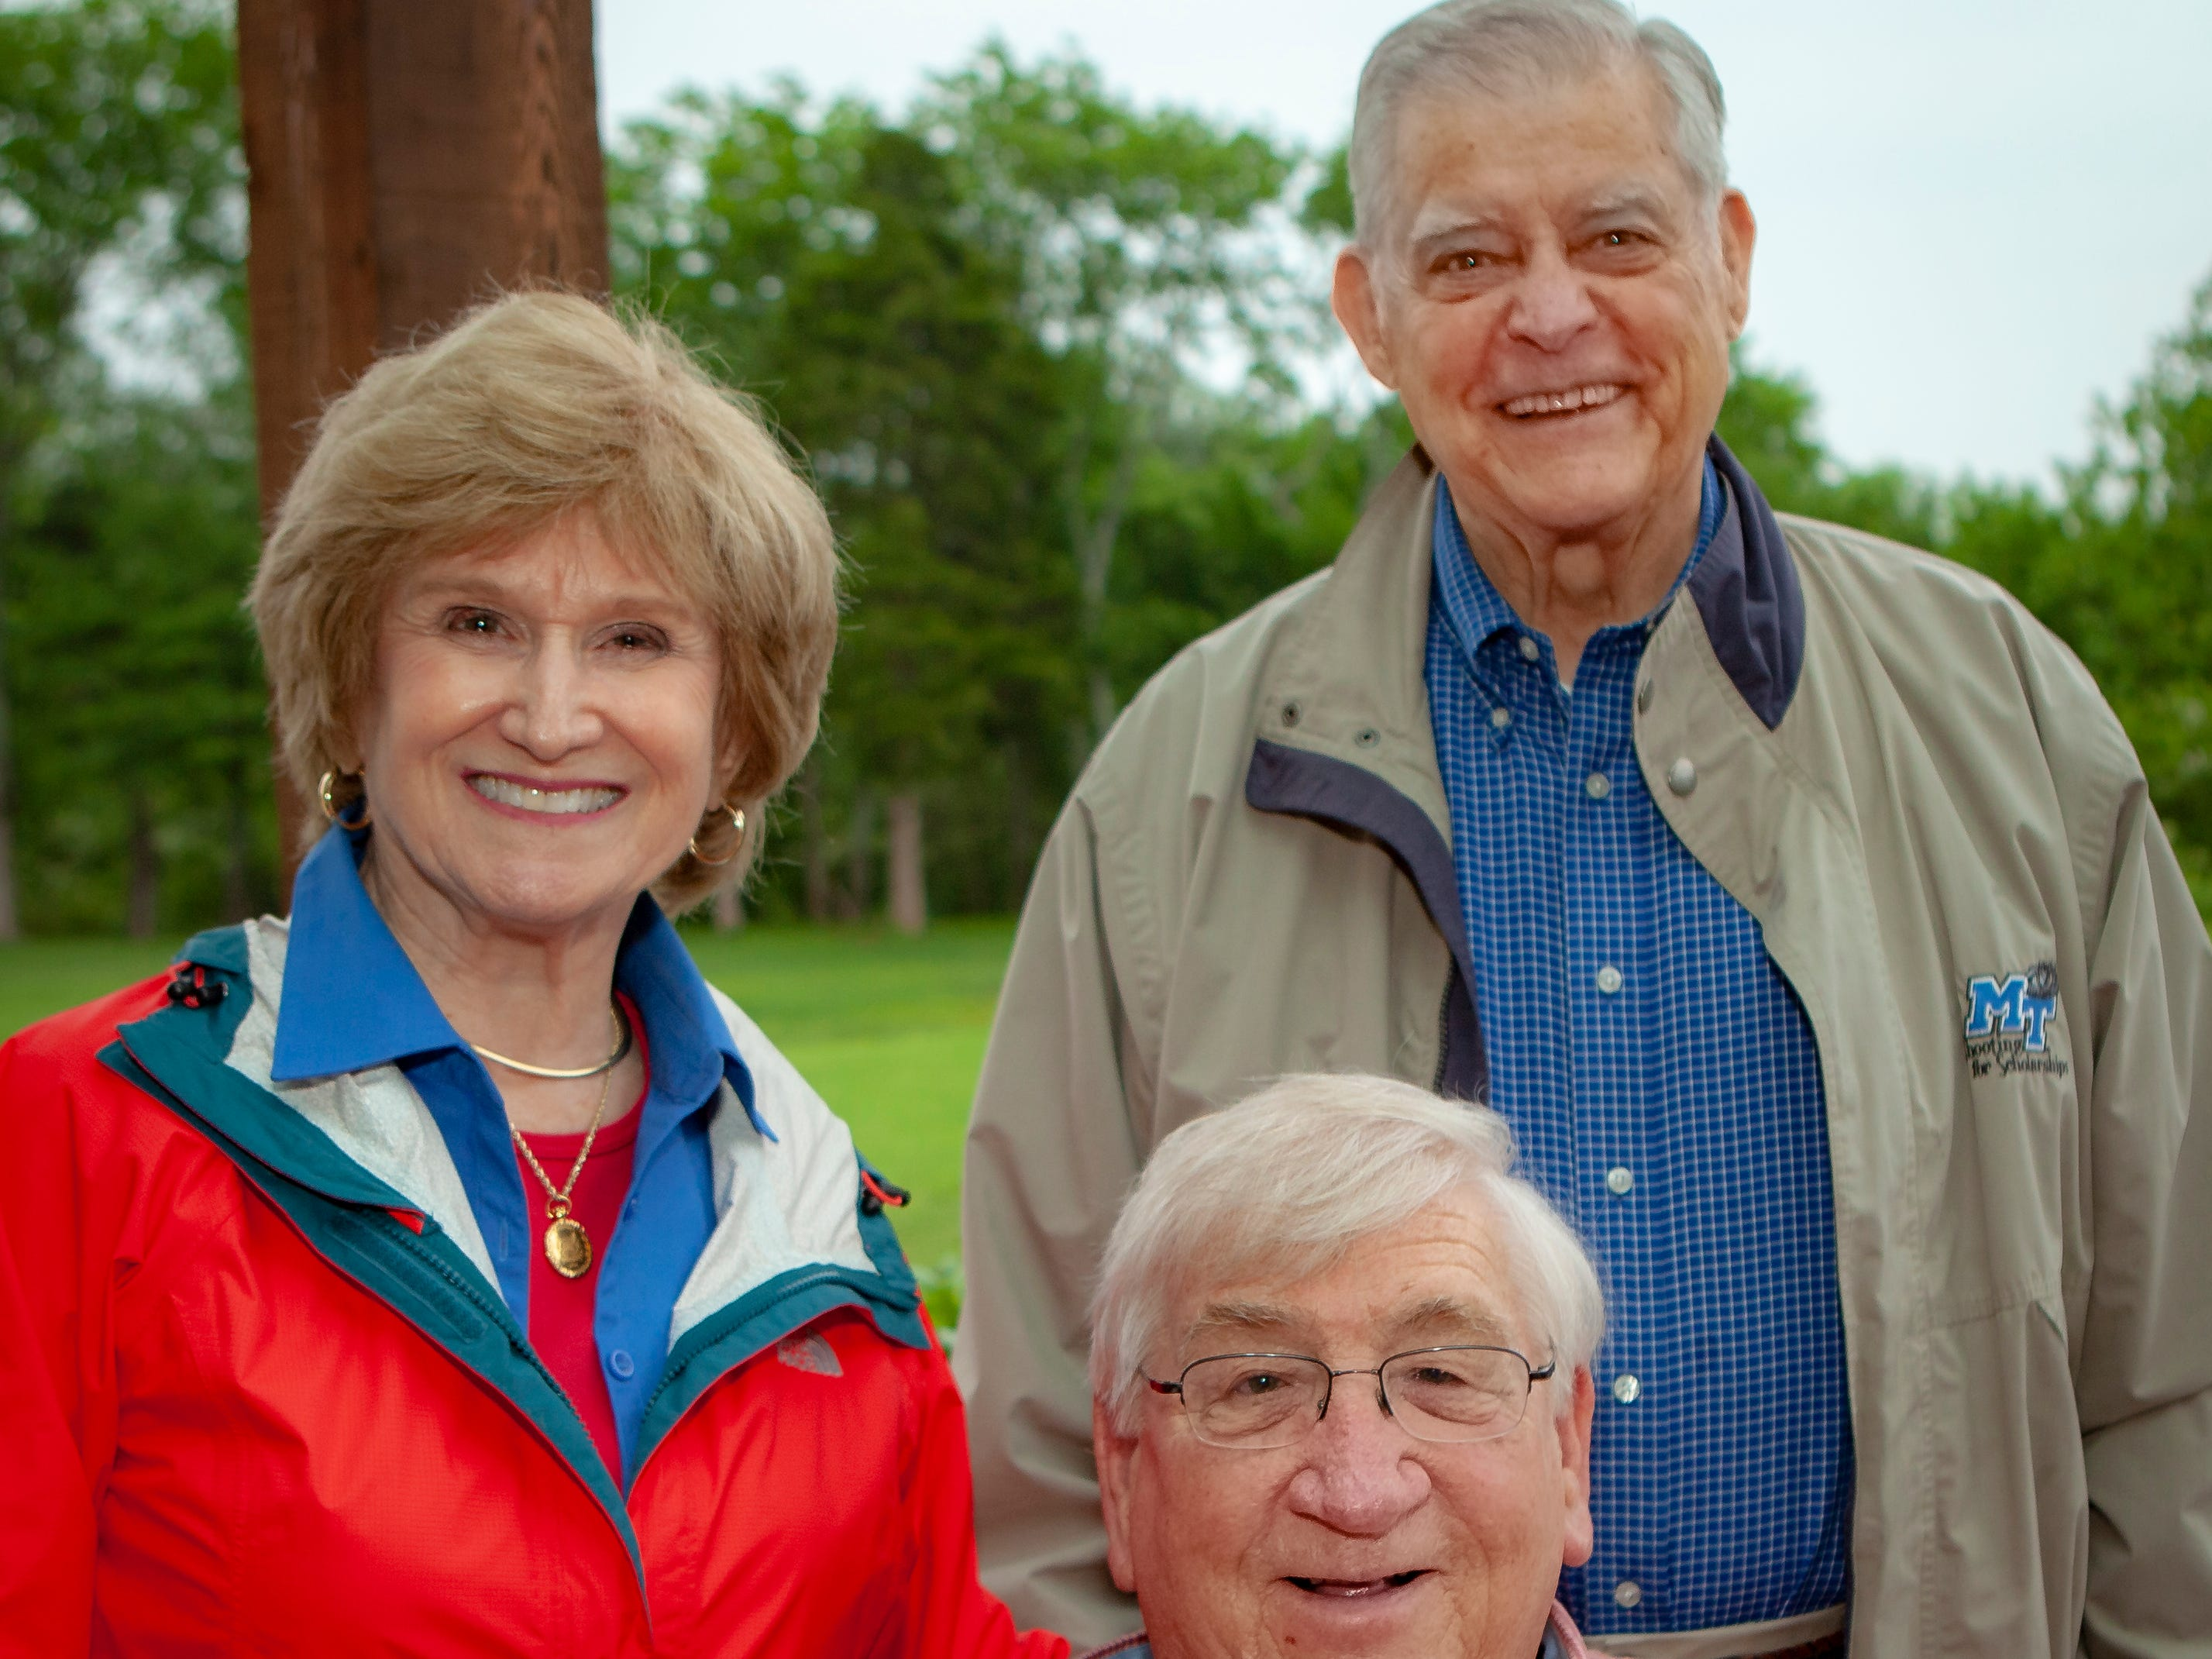 Eva Mae Spielman, Richard Slicker and Ross Spielman enjoyed a Cajun feast under the stars at United Way's Red, White and Bayou, held Friday, May 10, 2019 at the home of Jimmy & Nikkole Aho.